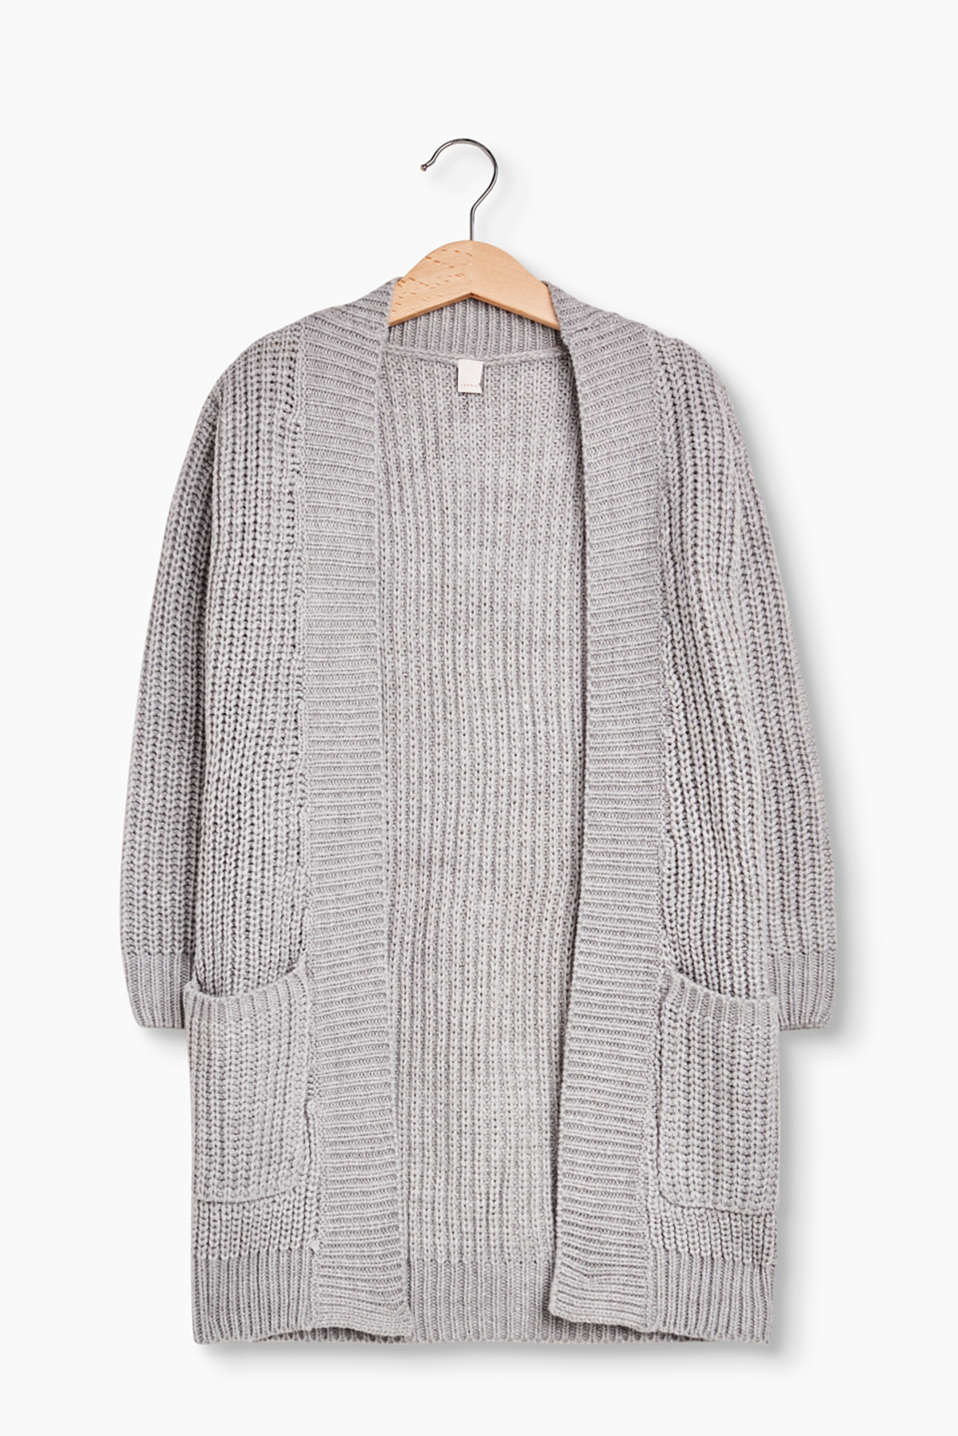 Esprit - Long ribbed knit cardigan